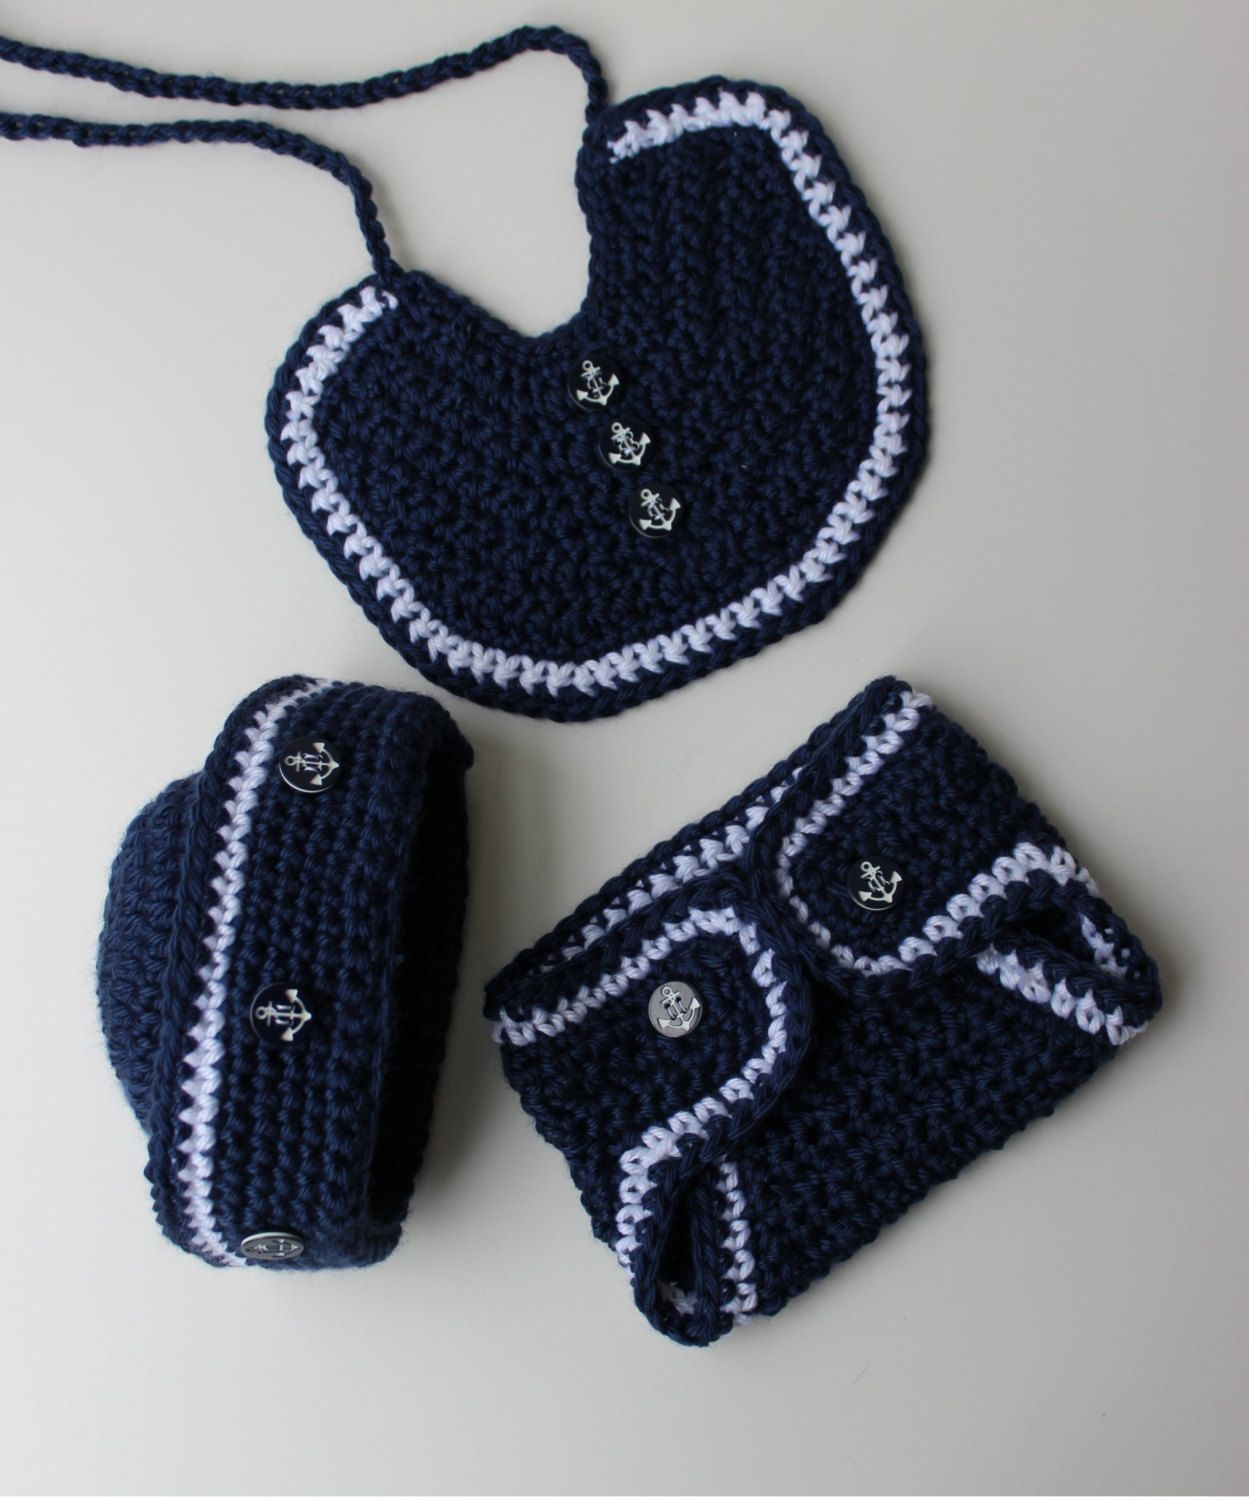 Crochet Sailor Hat Pattern - Crochet Bib Pattern - Crochet Diaper ...